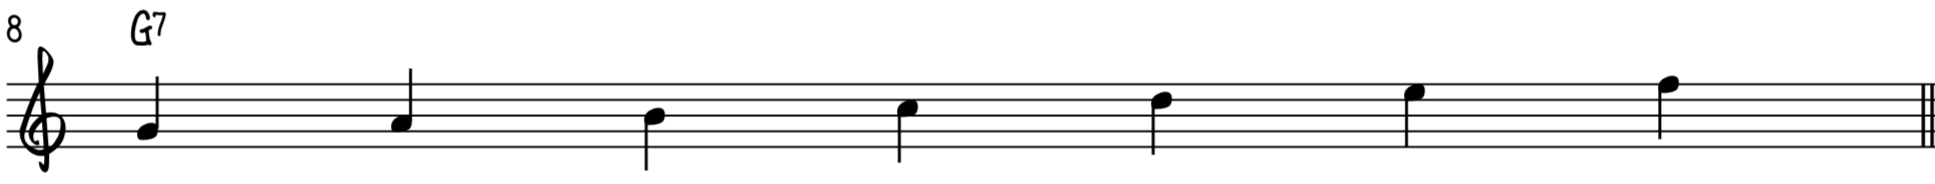 The G Mixolydian scale to solo over a G dominant 7th chord